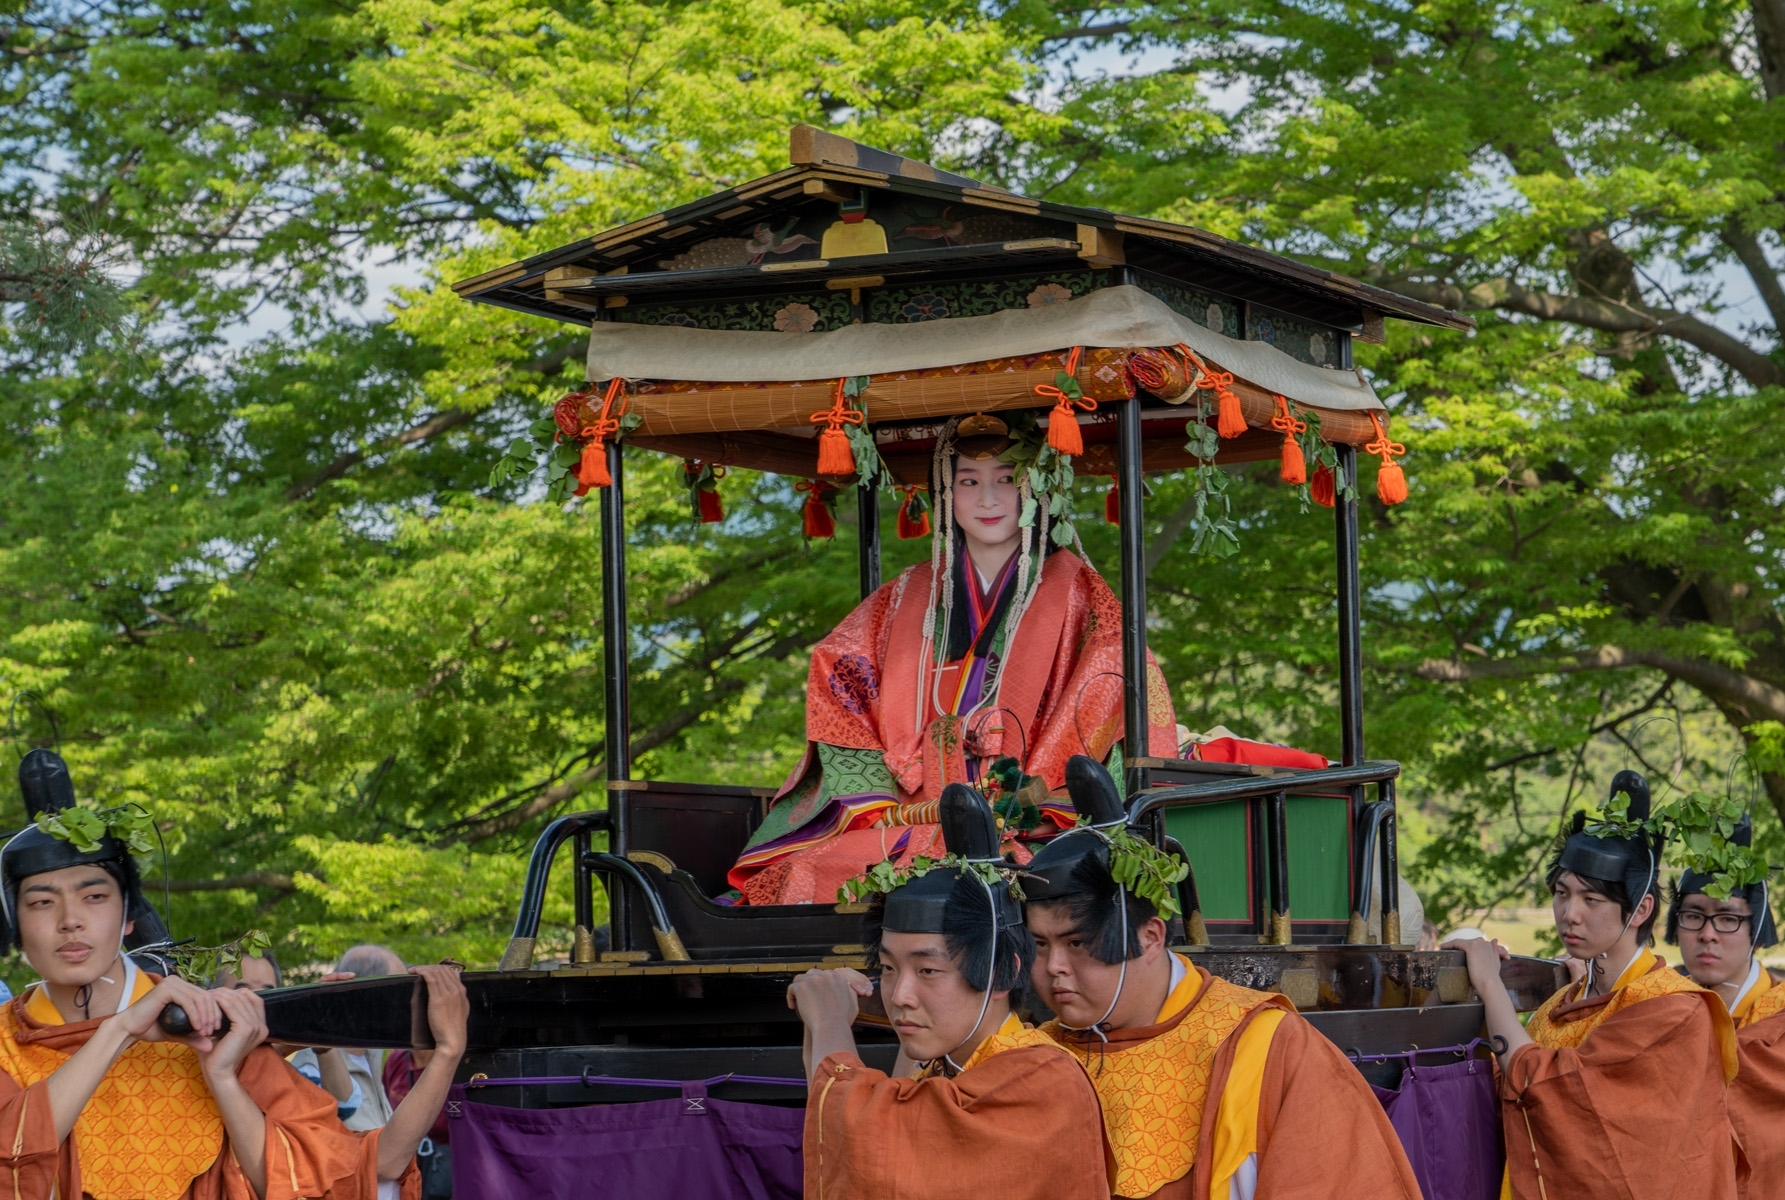 Aoi-Matsuri-festival-in-Kyoto-during-which-the-Saio-is-carried-on-a-palanquin-TA-Best-in-Show-by-John-Nygren-MR